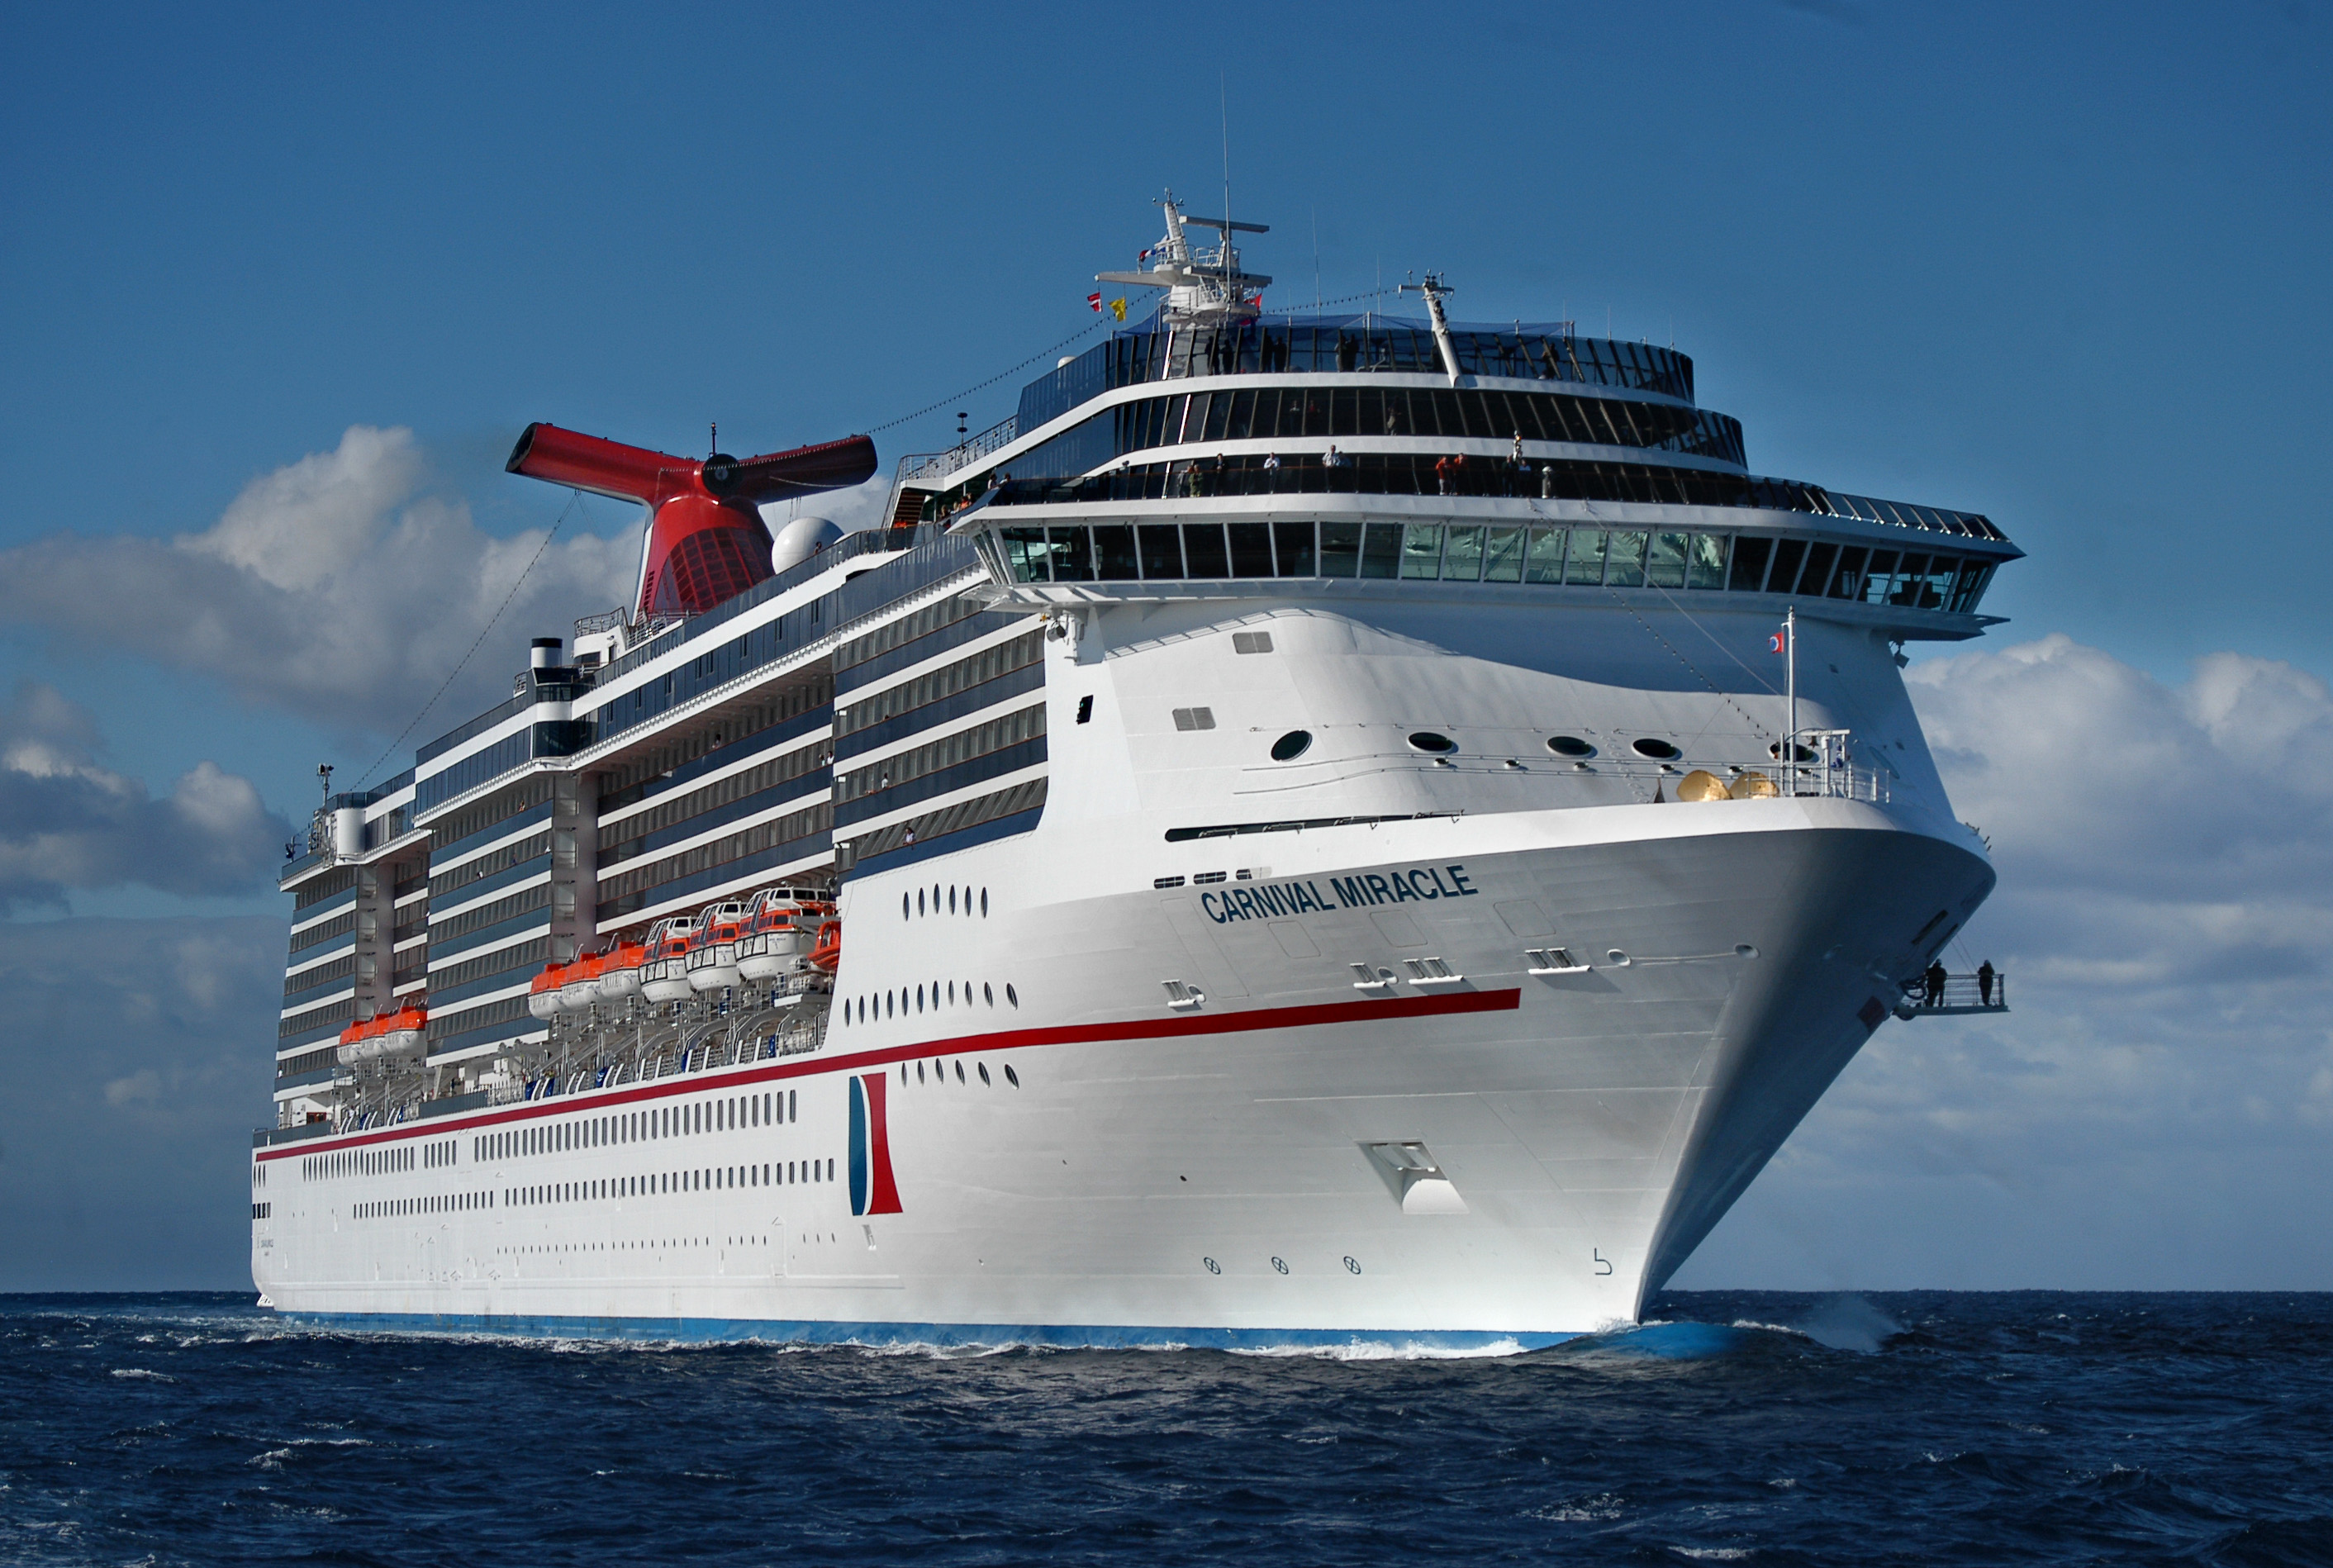 Carnival Cruise Line Adds Sailings From San Francisco To Carnival Miracle's Inaugural Schedule in 2020